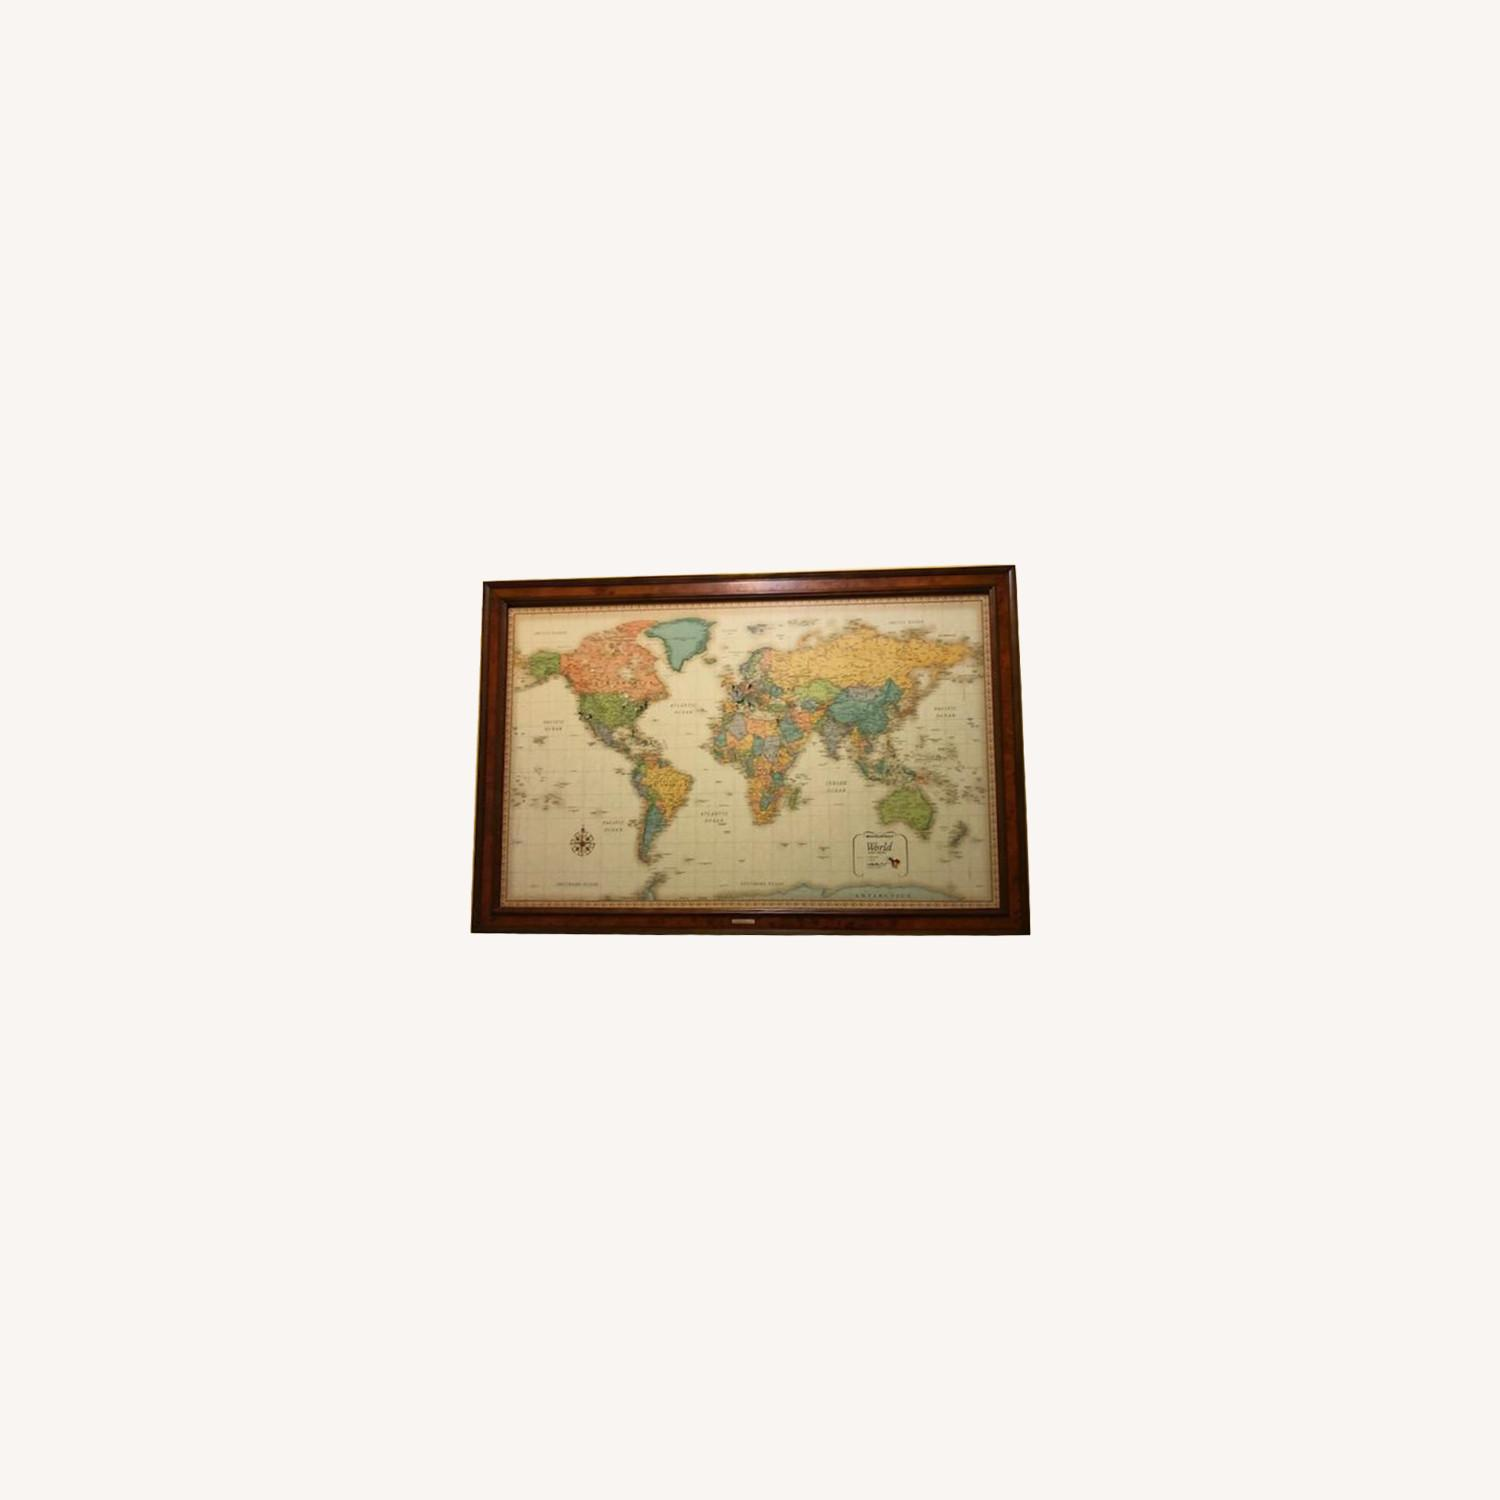 Frontgate Antique World Map - image-0